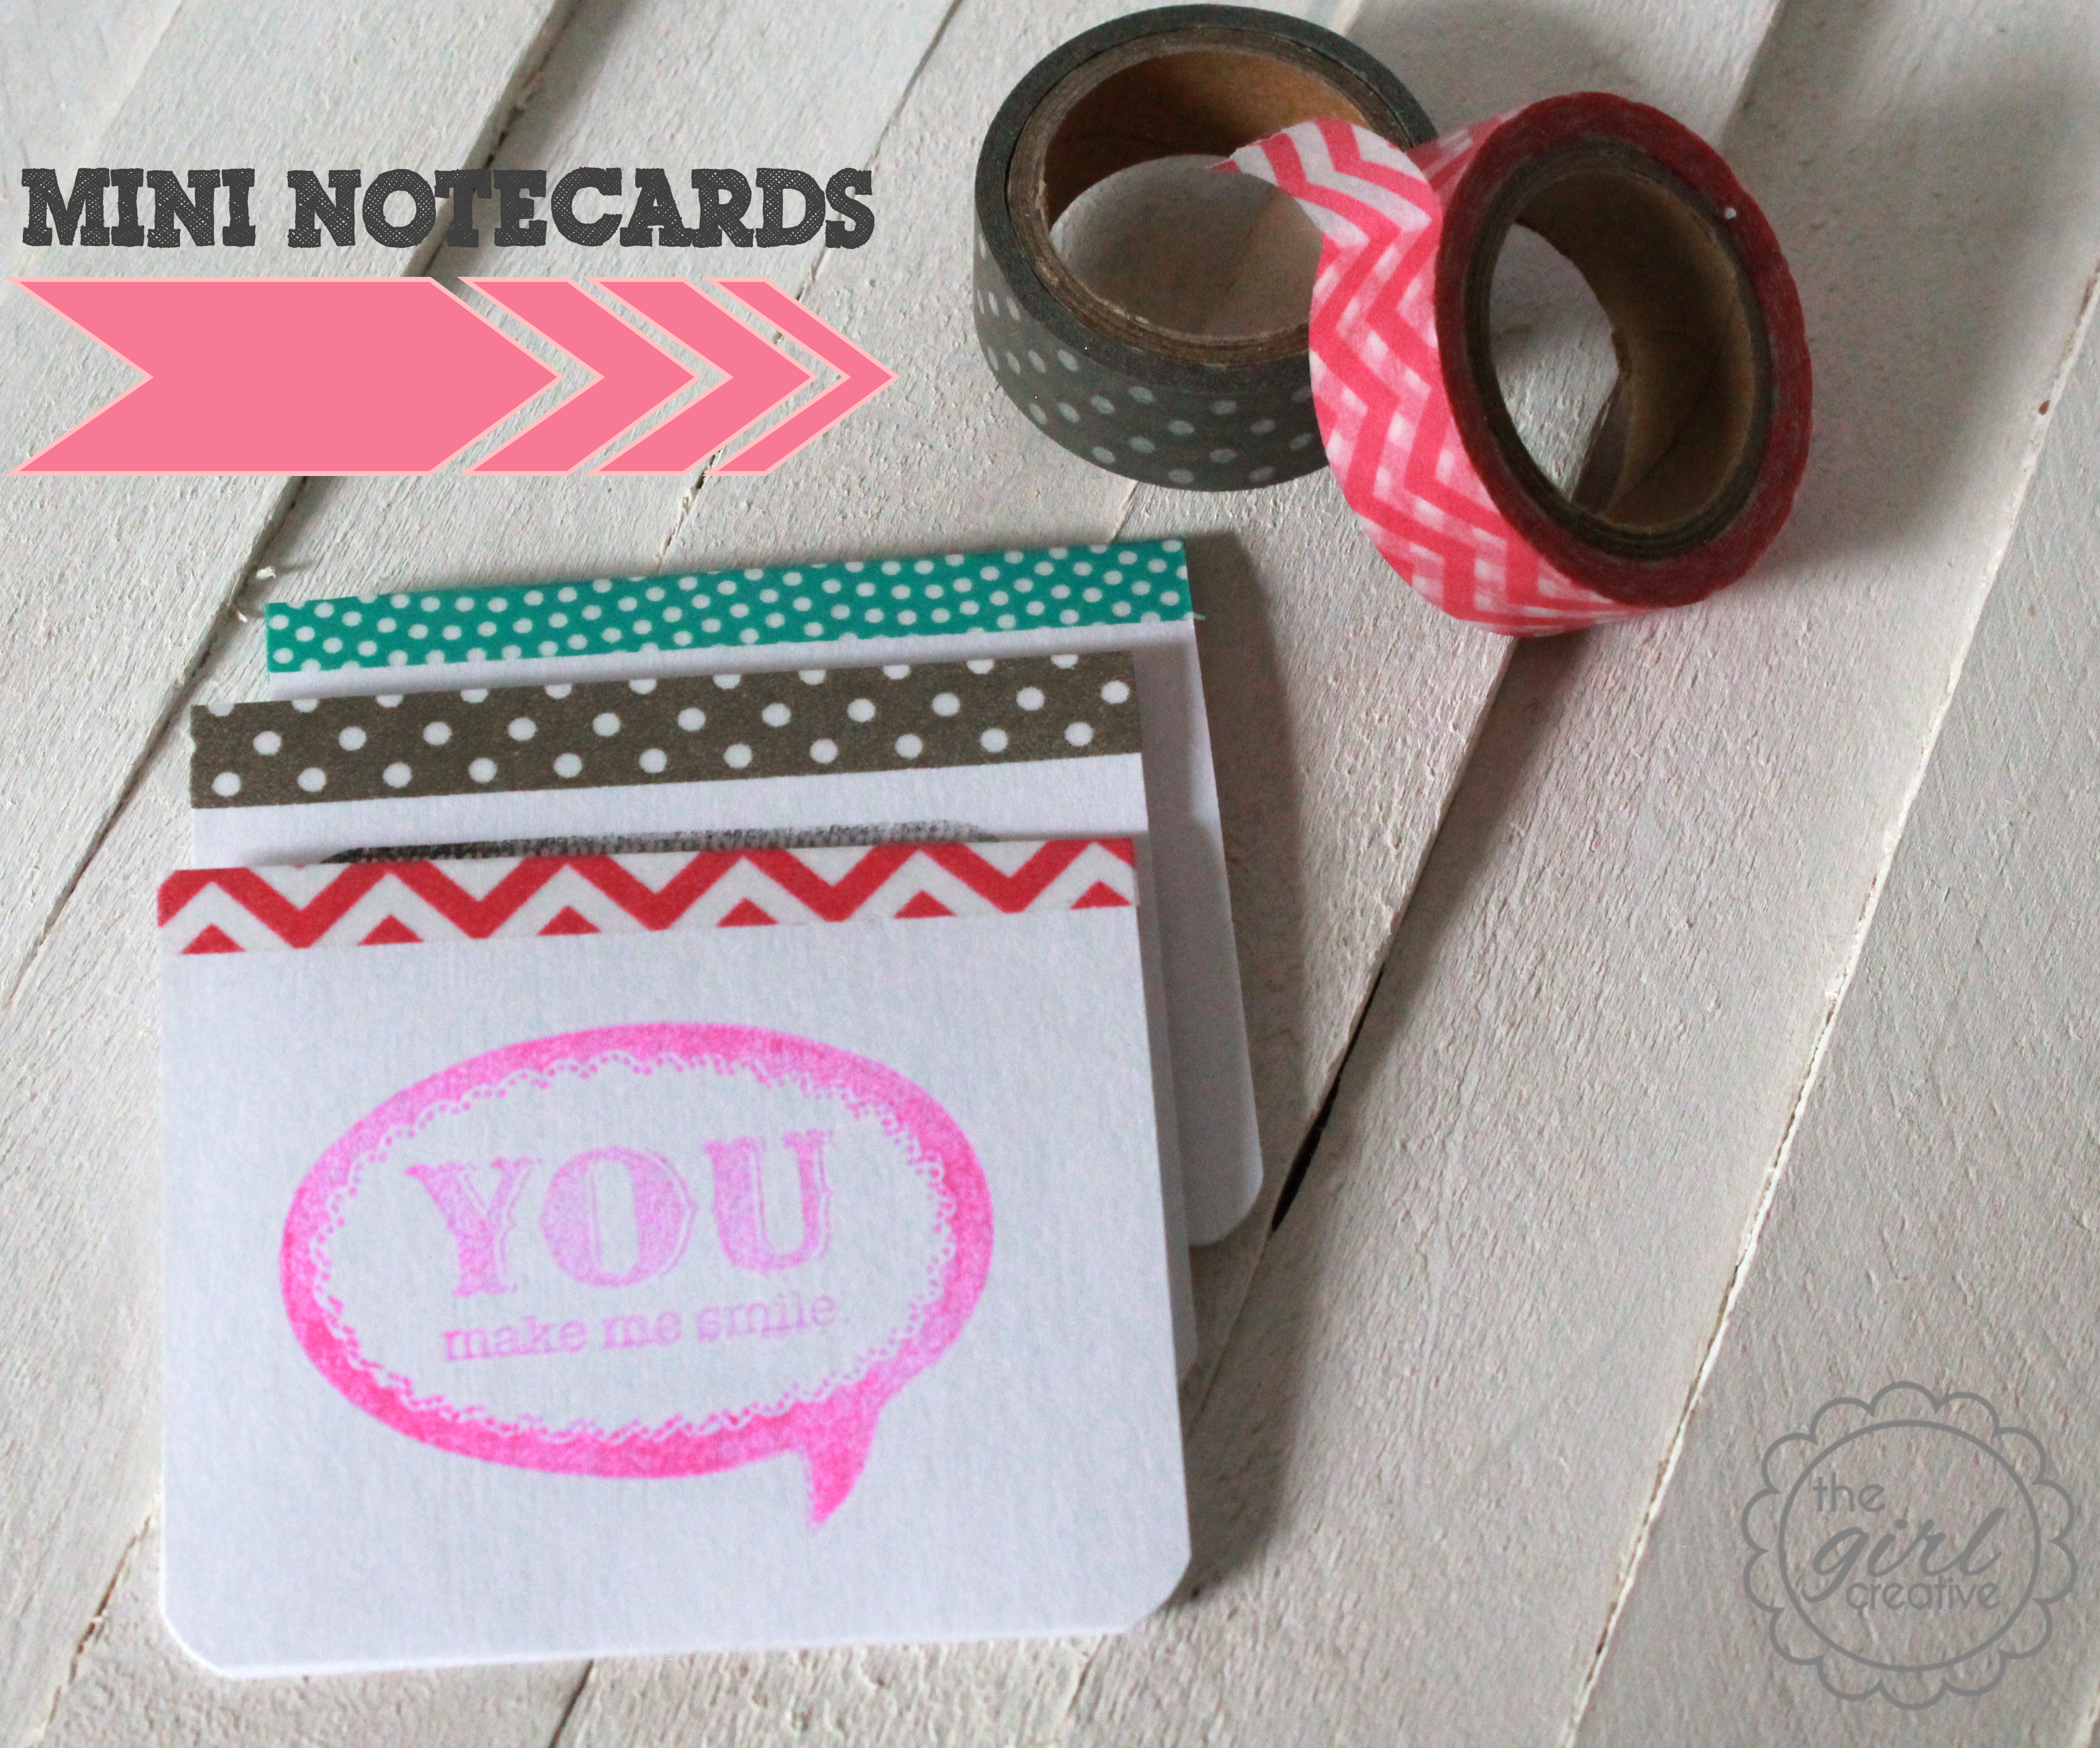 Mini Washi Tape Note Cards {15 Minute Craft}